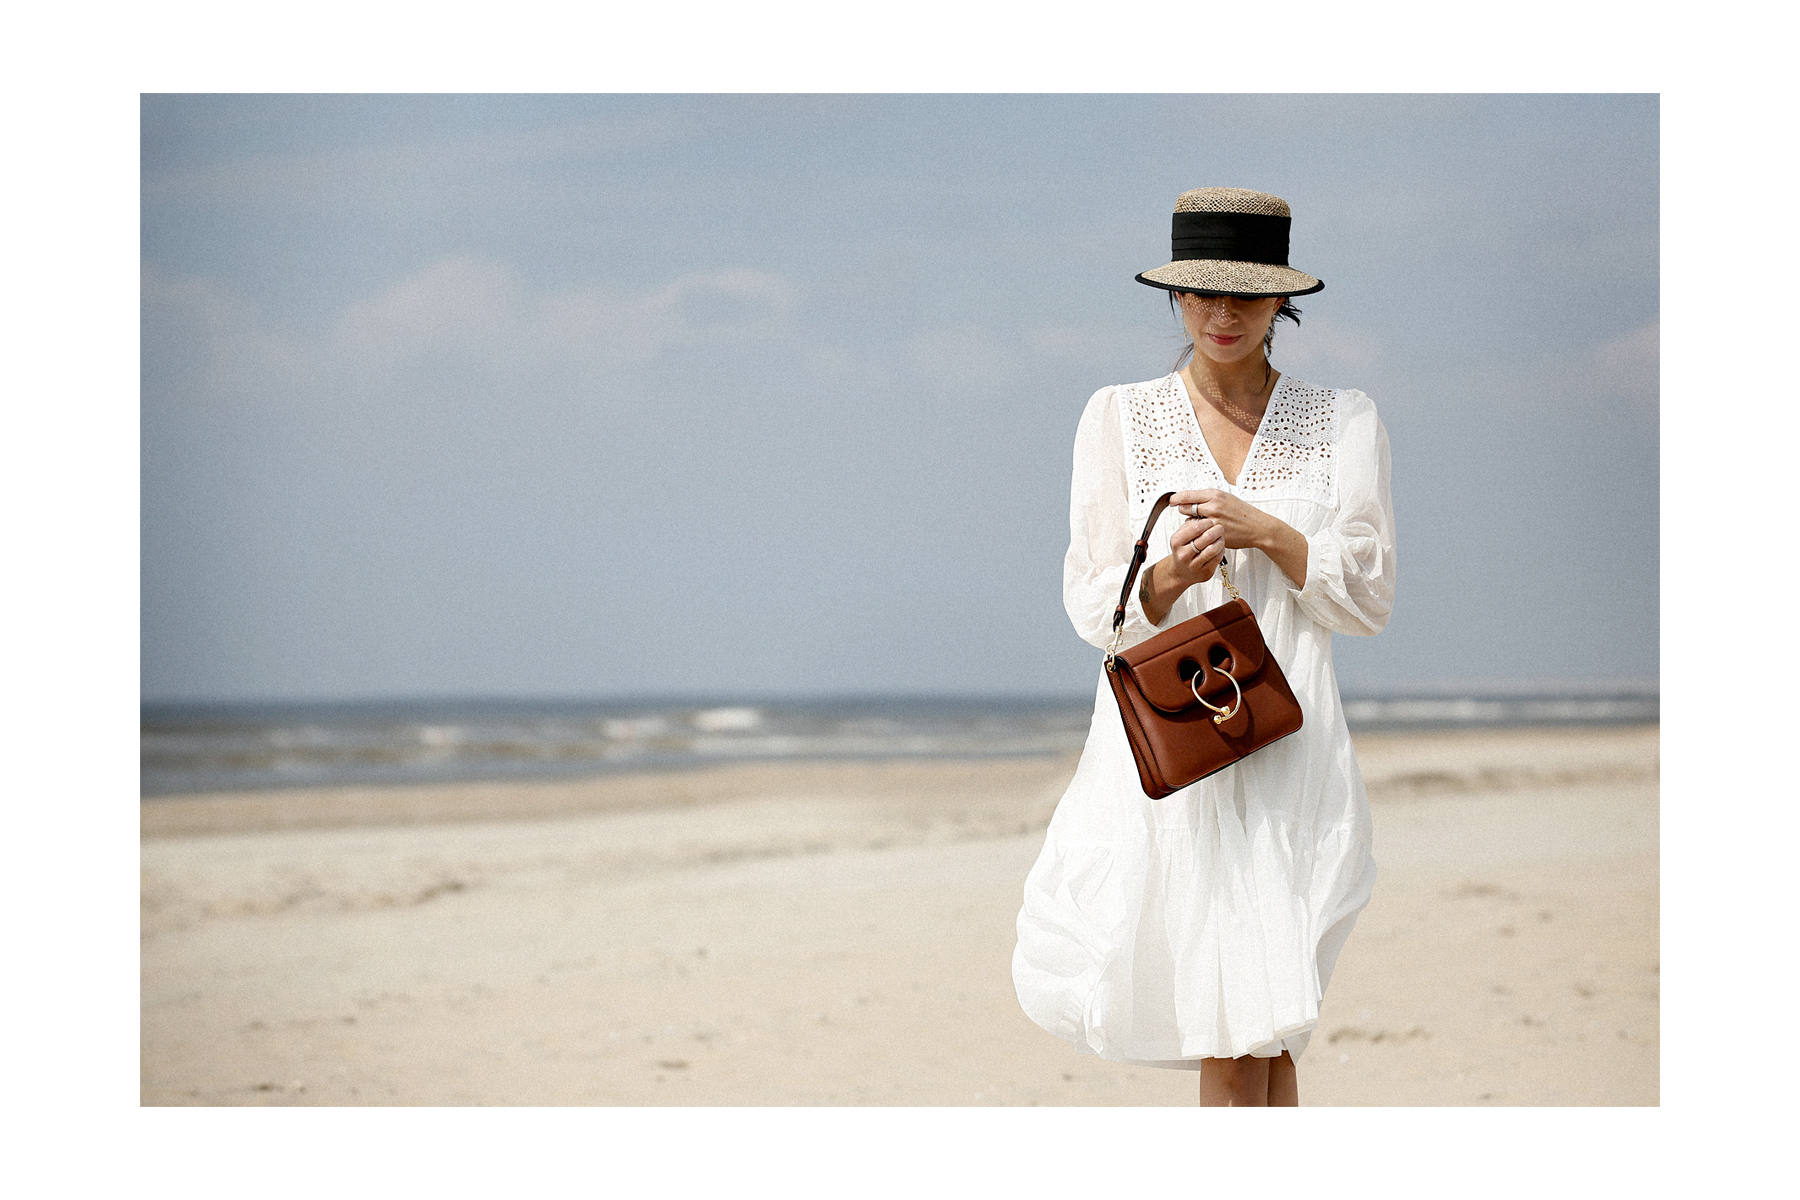 breuninger beach white dress closed j.w.anderson pierce bag straw hat summertime sunshine photography editorial vogue fashionblogger düsseldorf cats&dogs blog ricarda schernus modeblogger 1